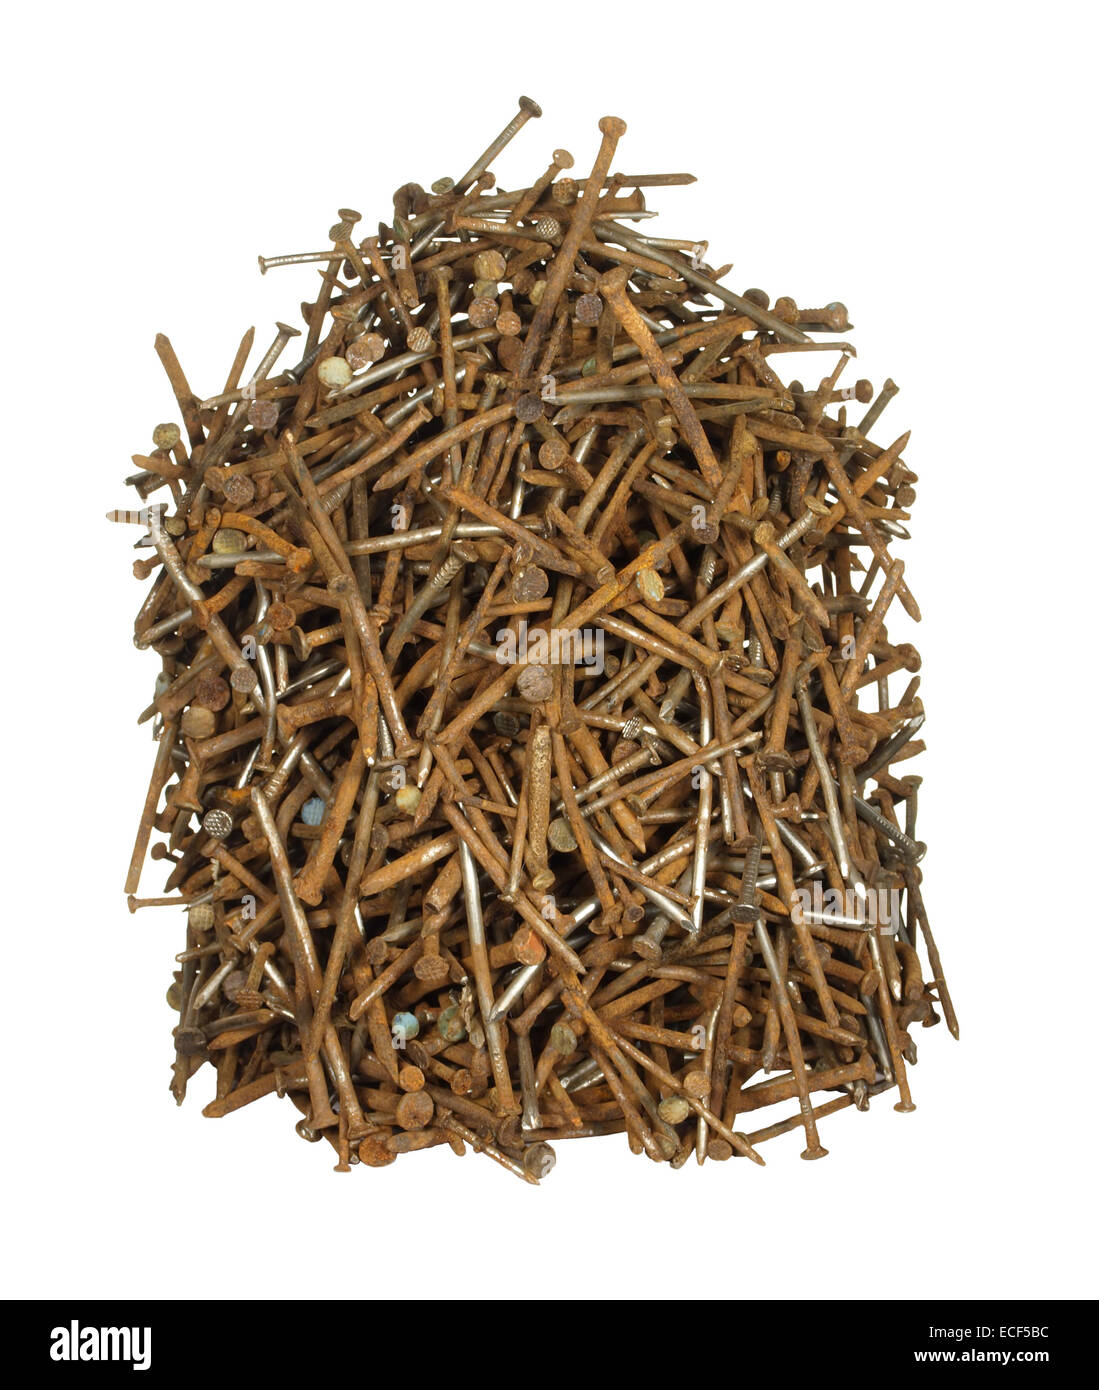 Pile of old rusty nails of various sizes isolated on white background. - Stock Image